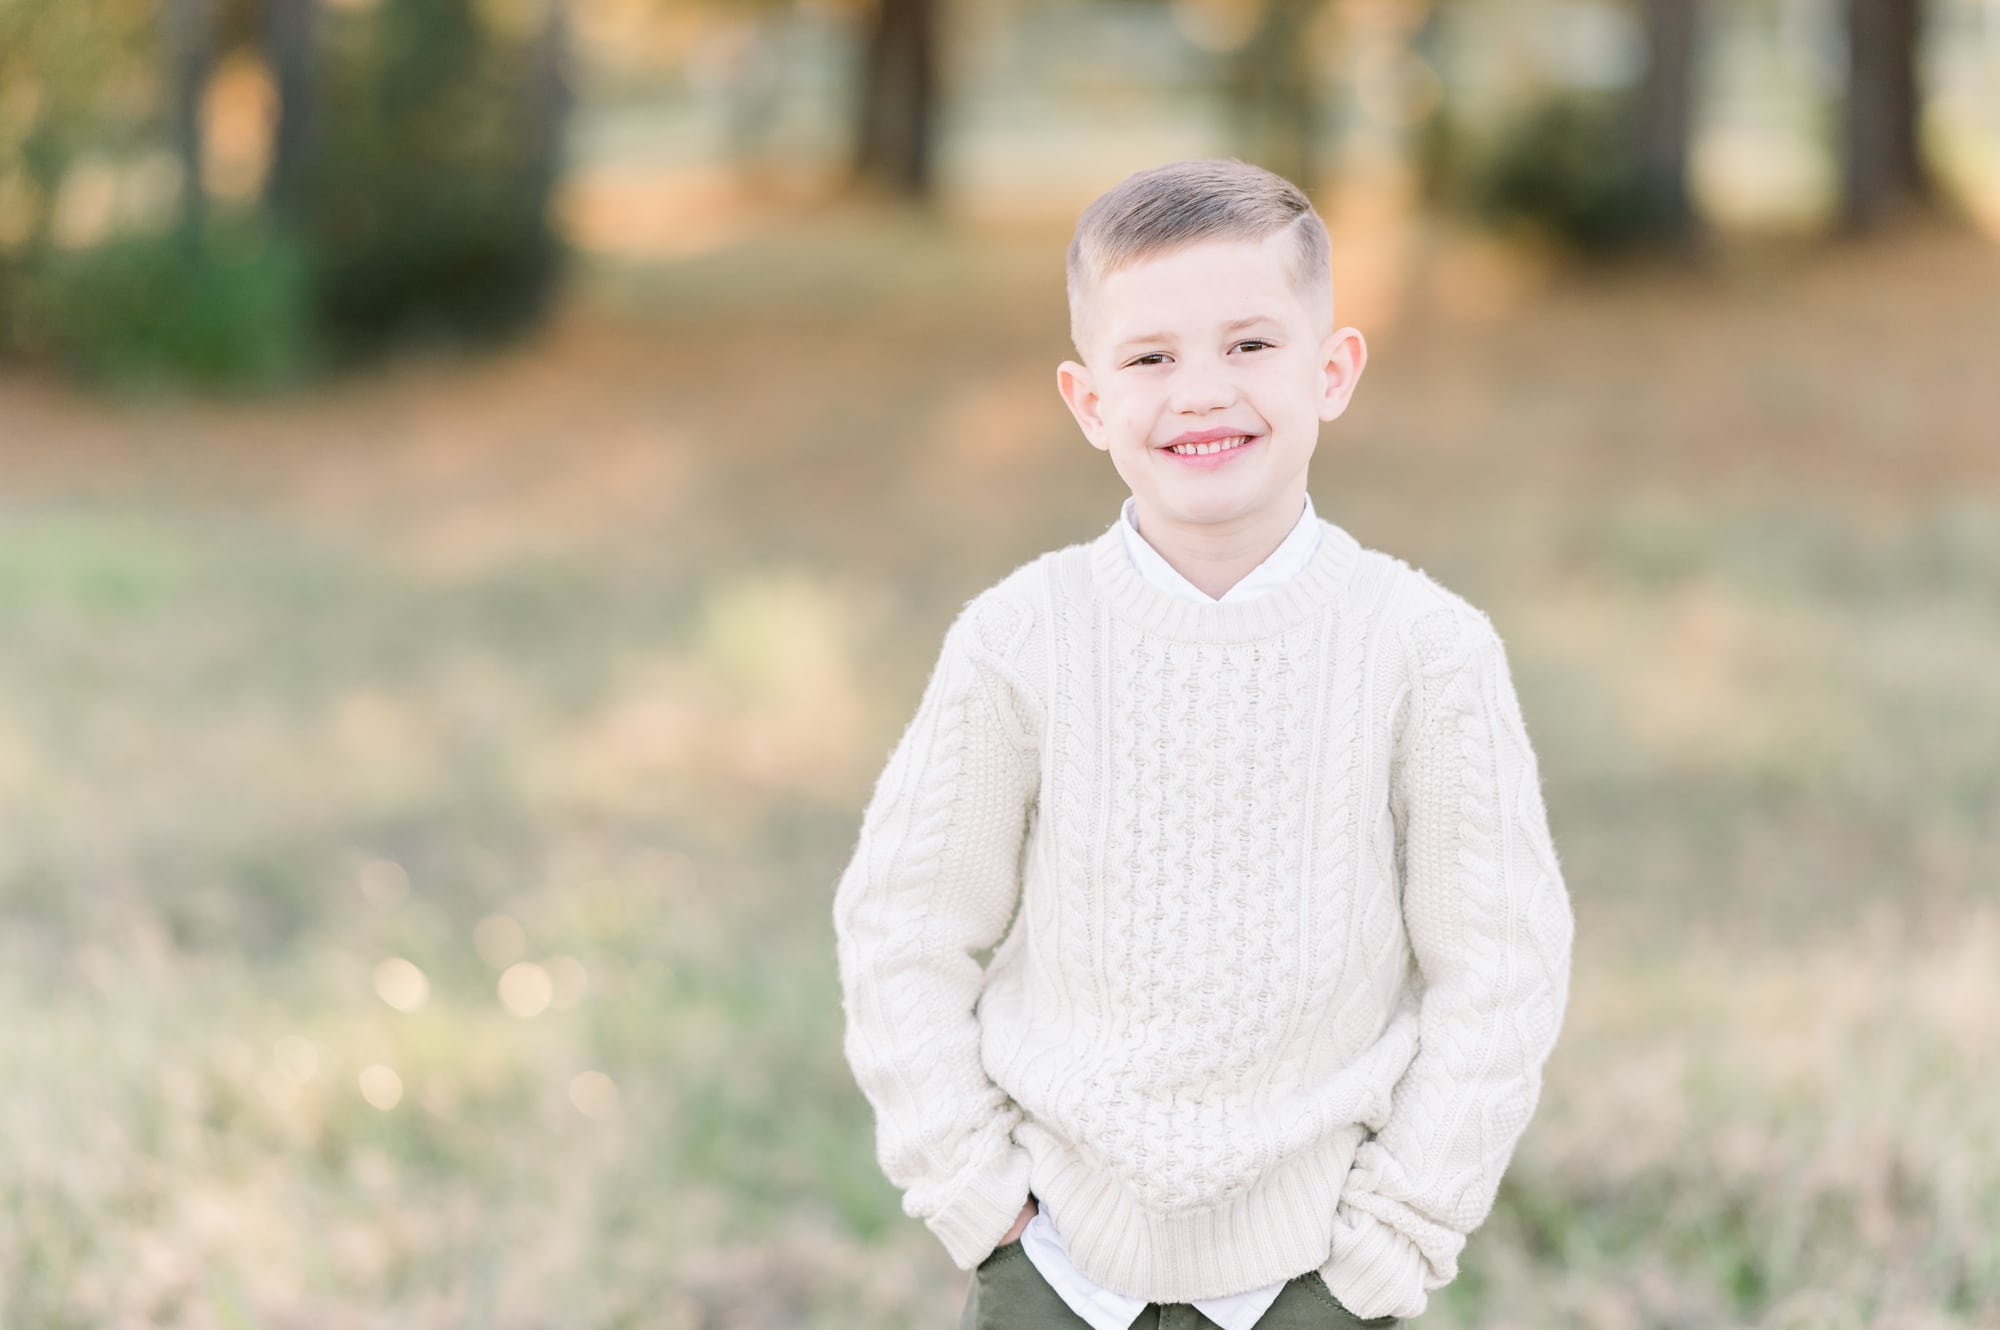 Oldest son in cable knit sweater smiling at camera during family session. Photo by Aimee Hamilton Photography.